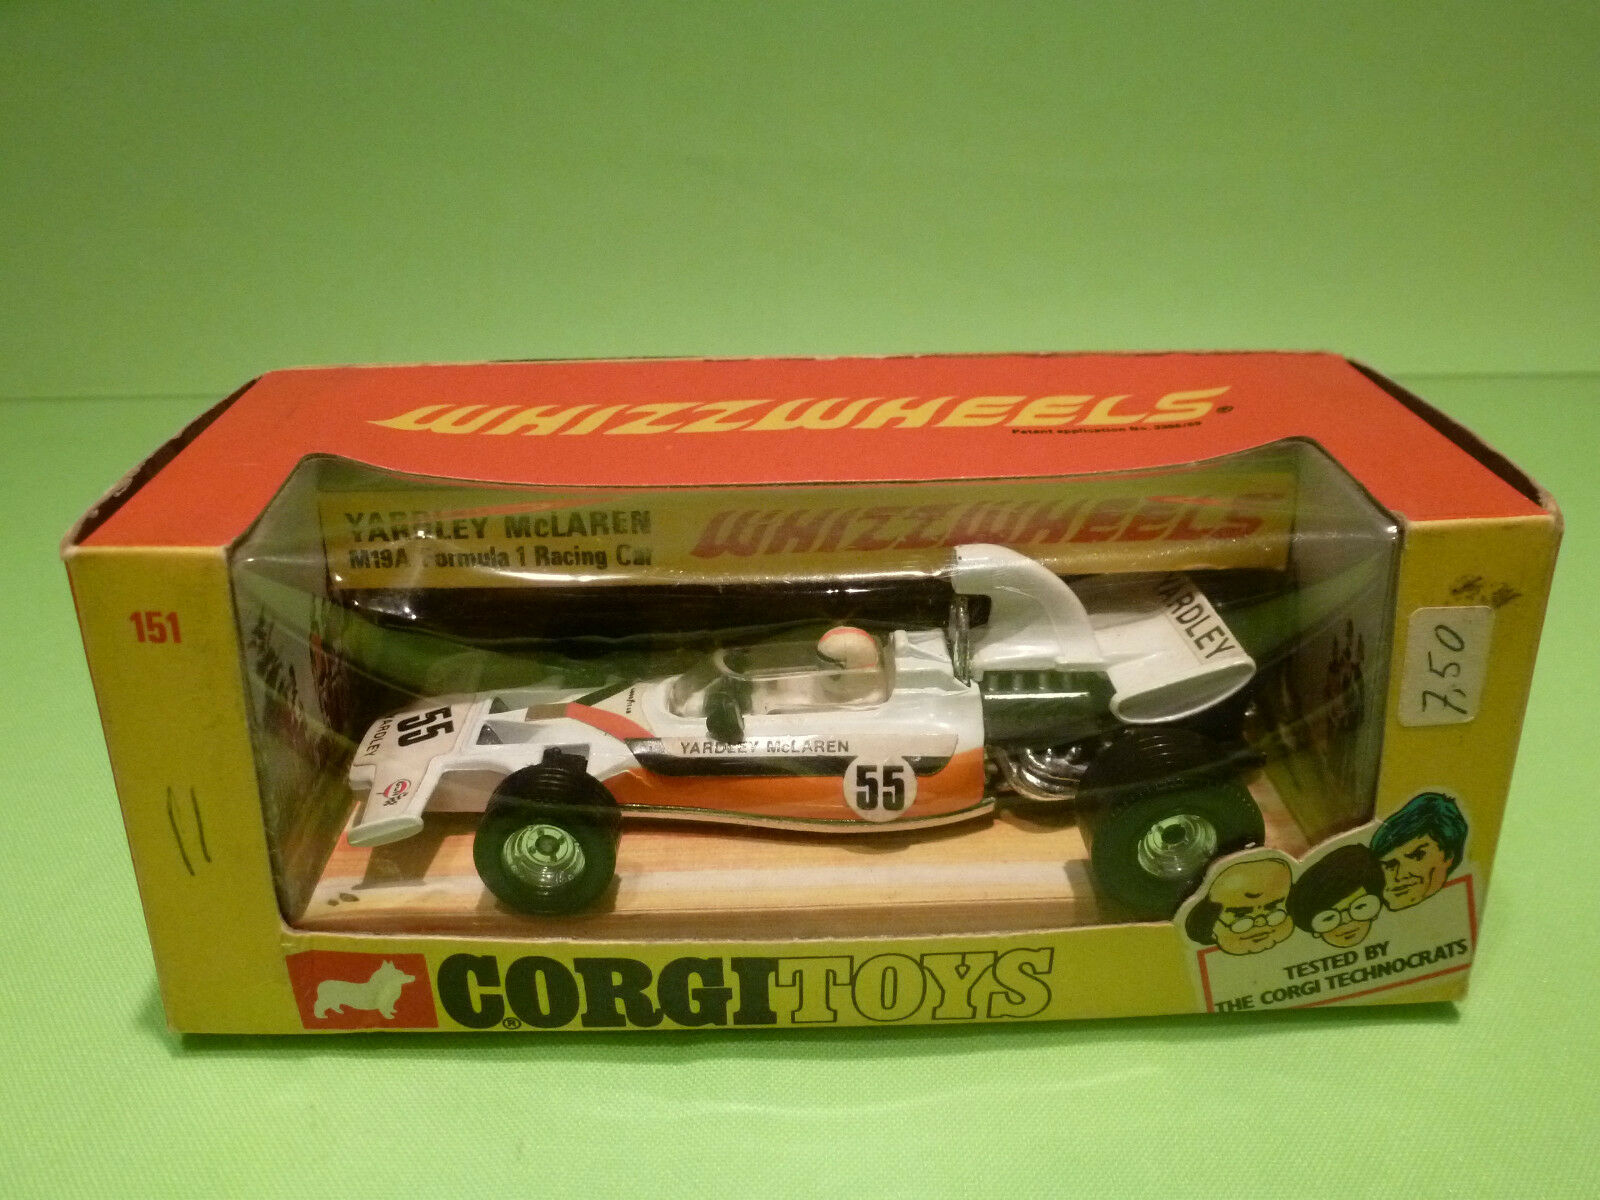 CORGI TOYS 151 151 151 YARDLEY MCLAREN M19A  RACING CAR- RARE  SELTEN - VERY GOOD IN BOX 2f3f4f